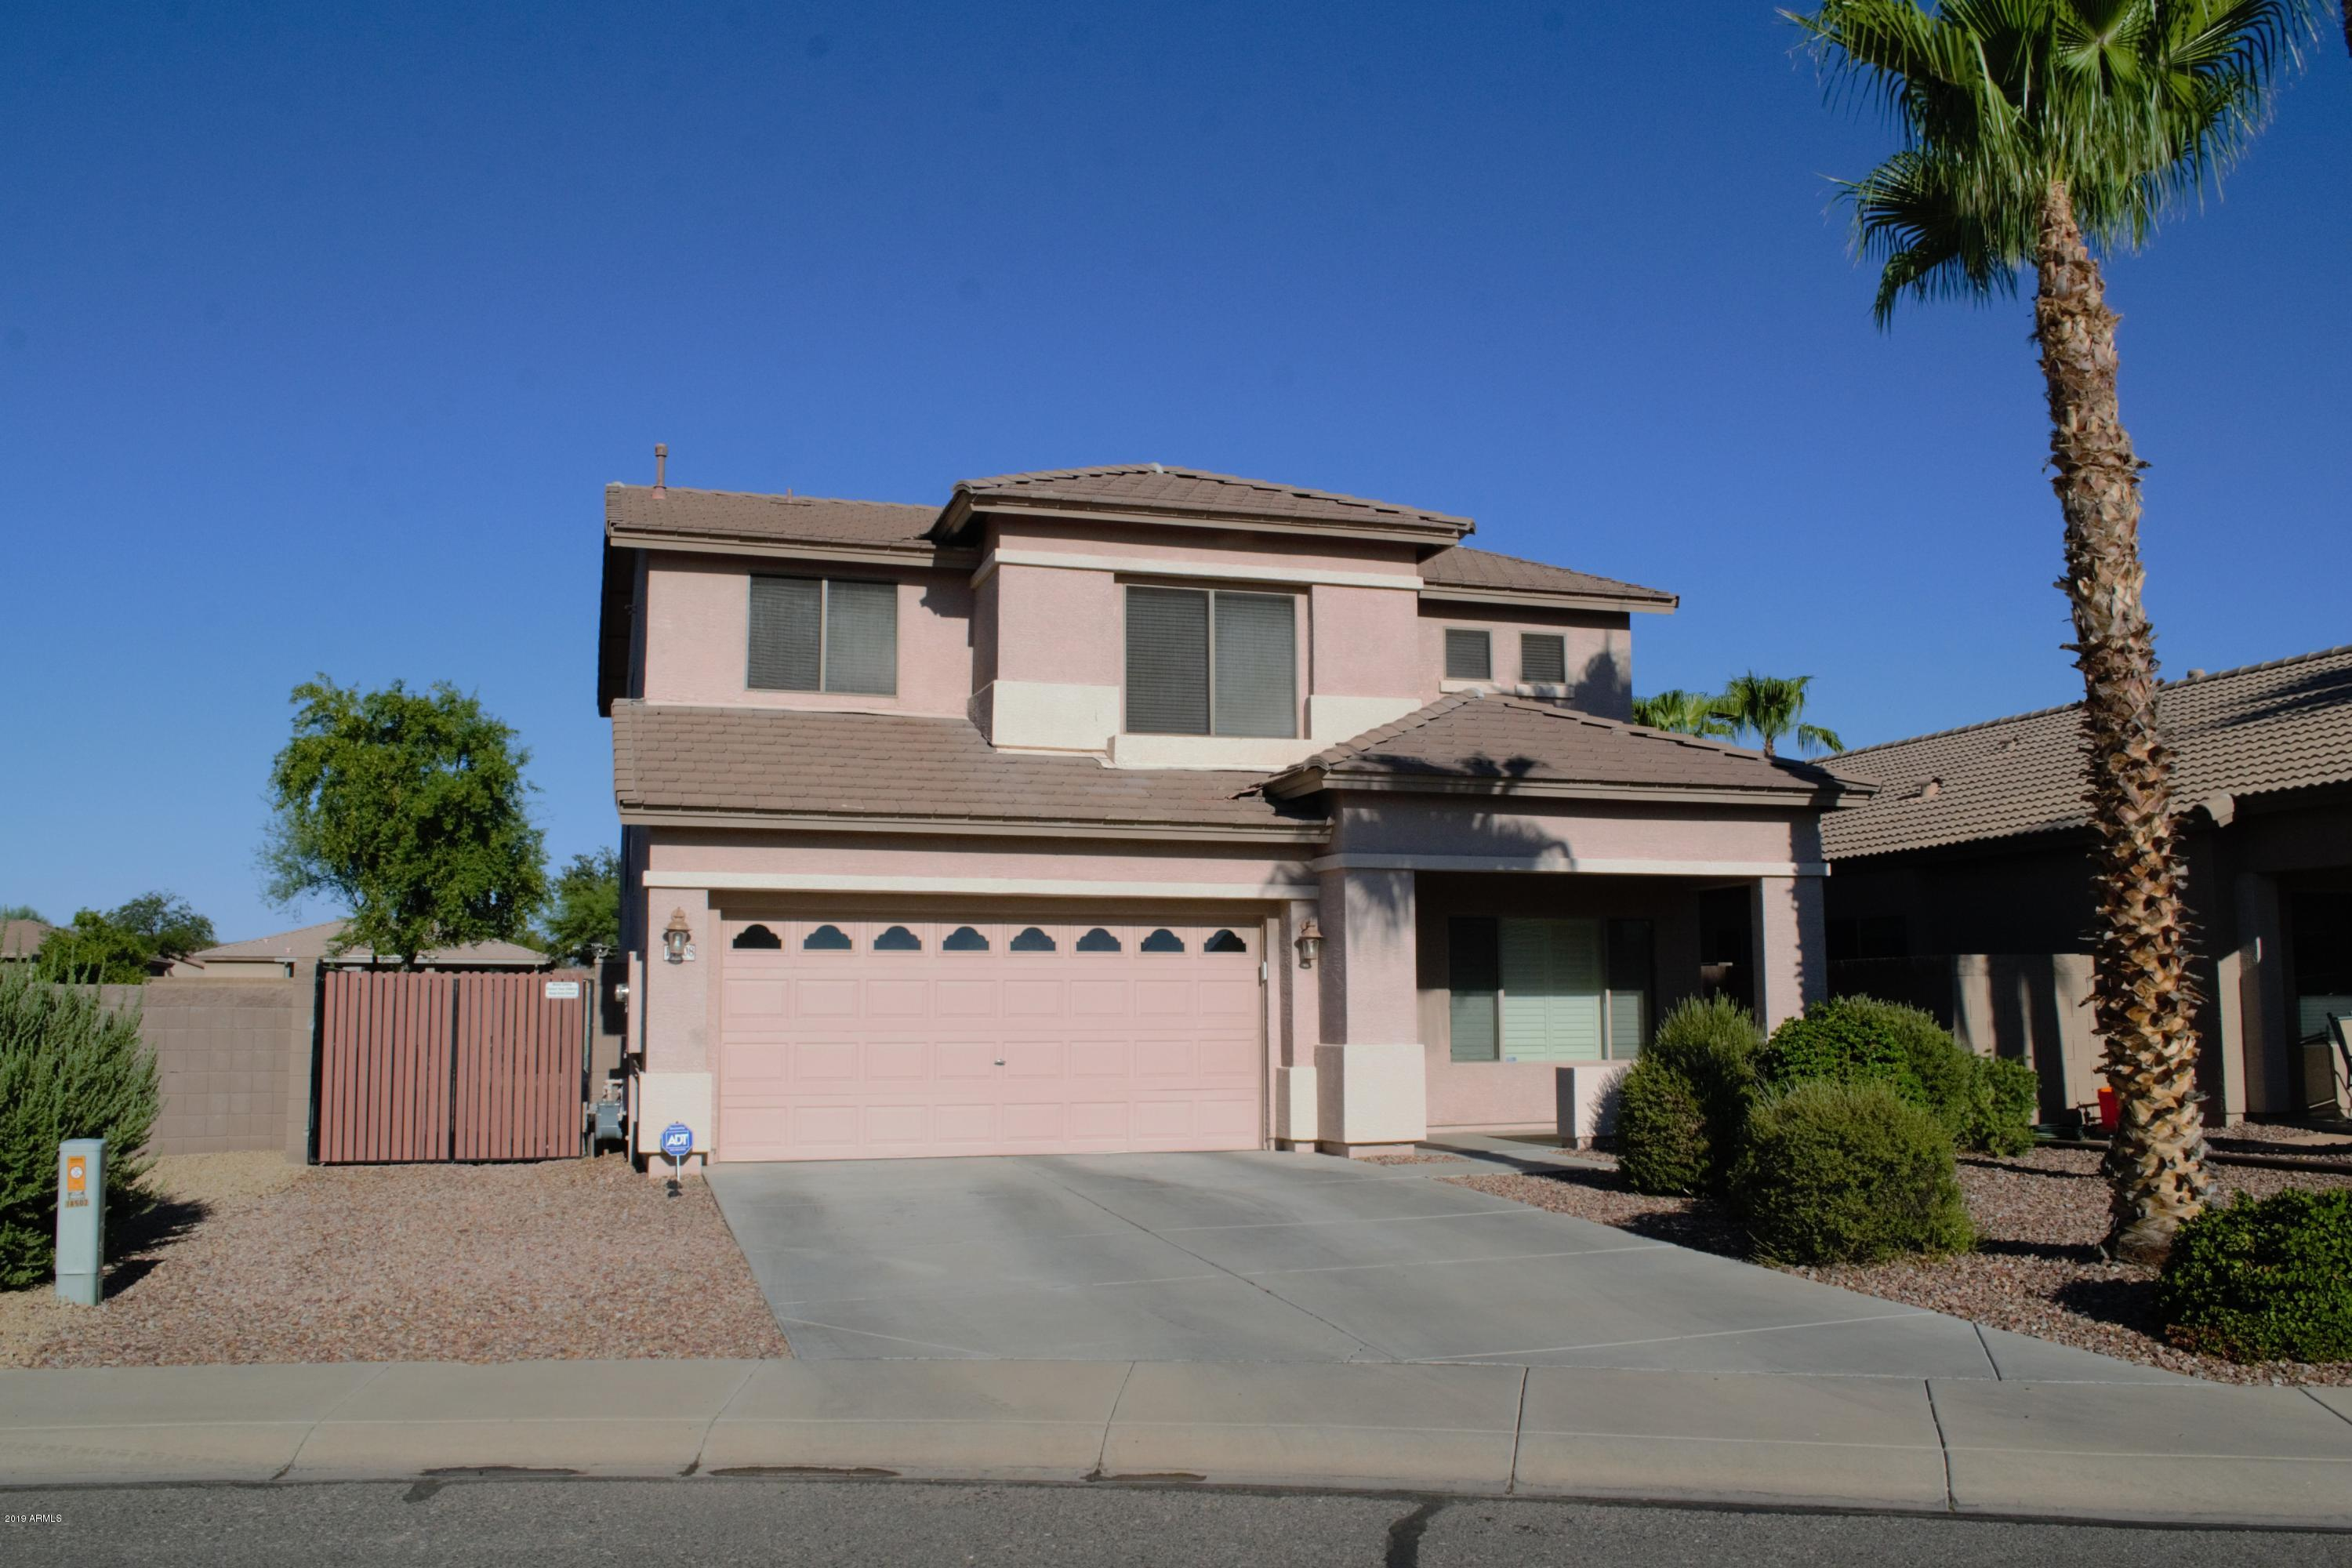 14508 N 146 Lane, Surprise, Arizona